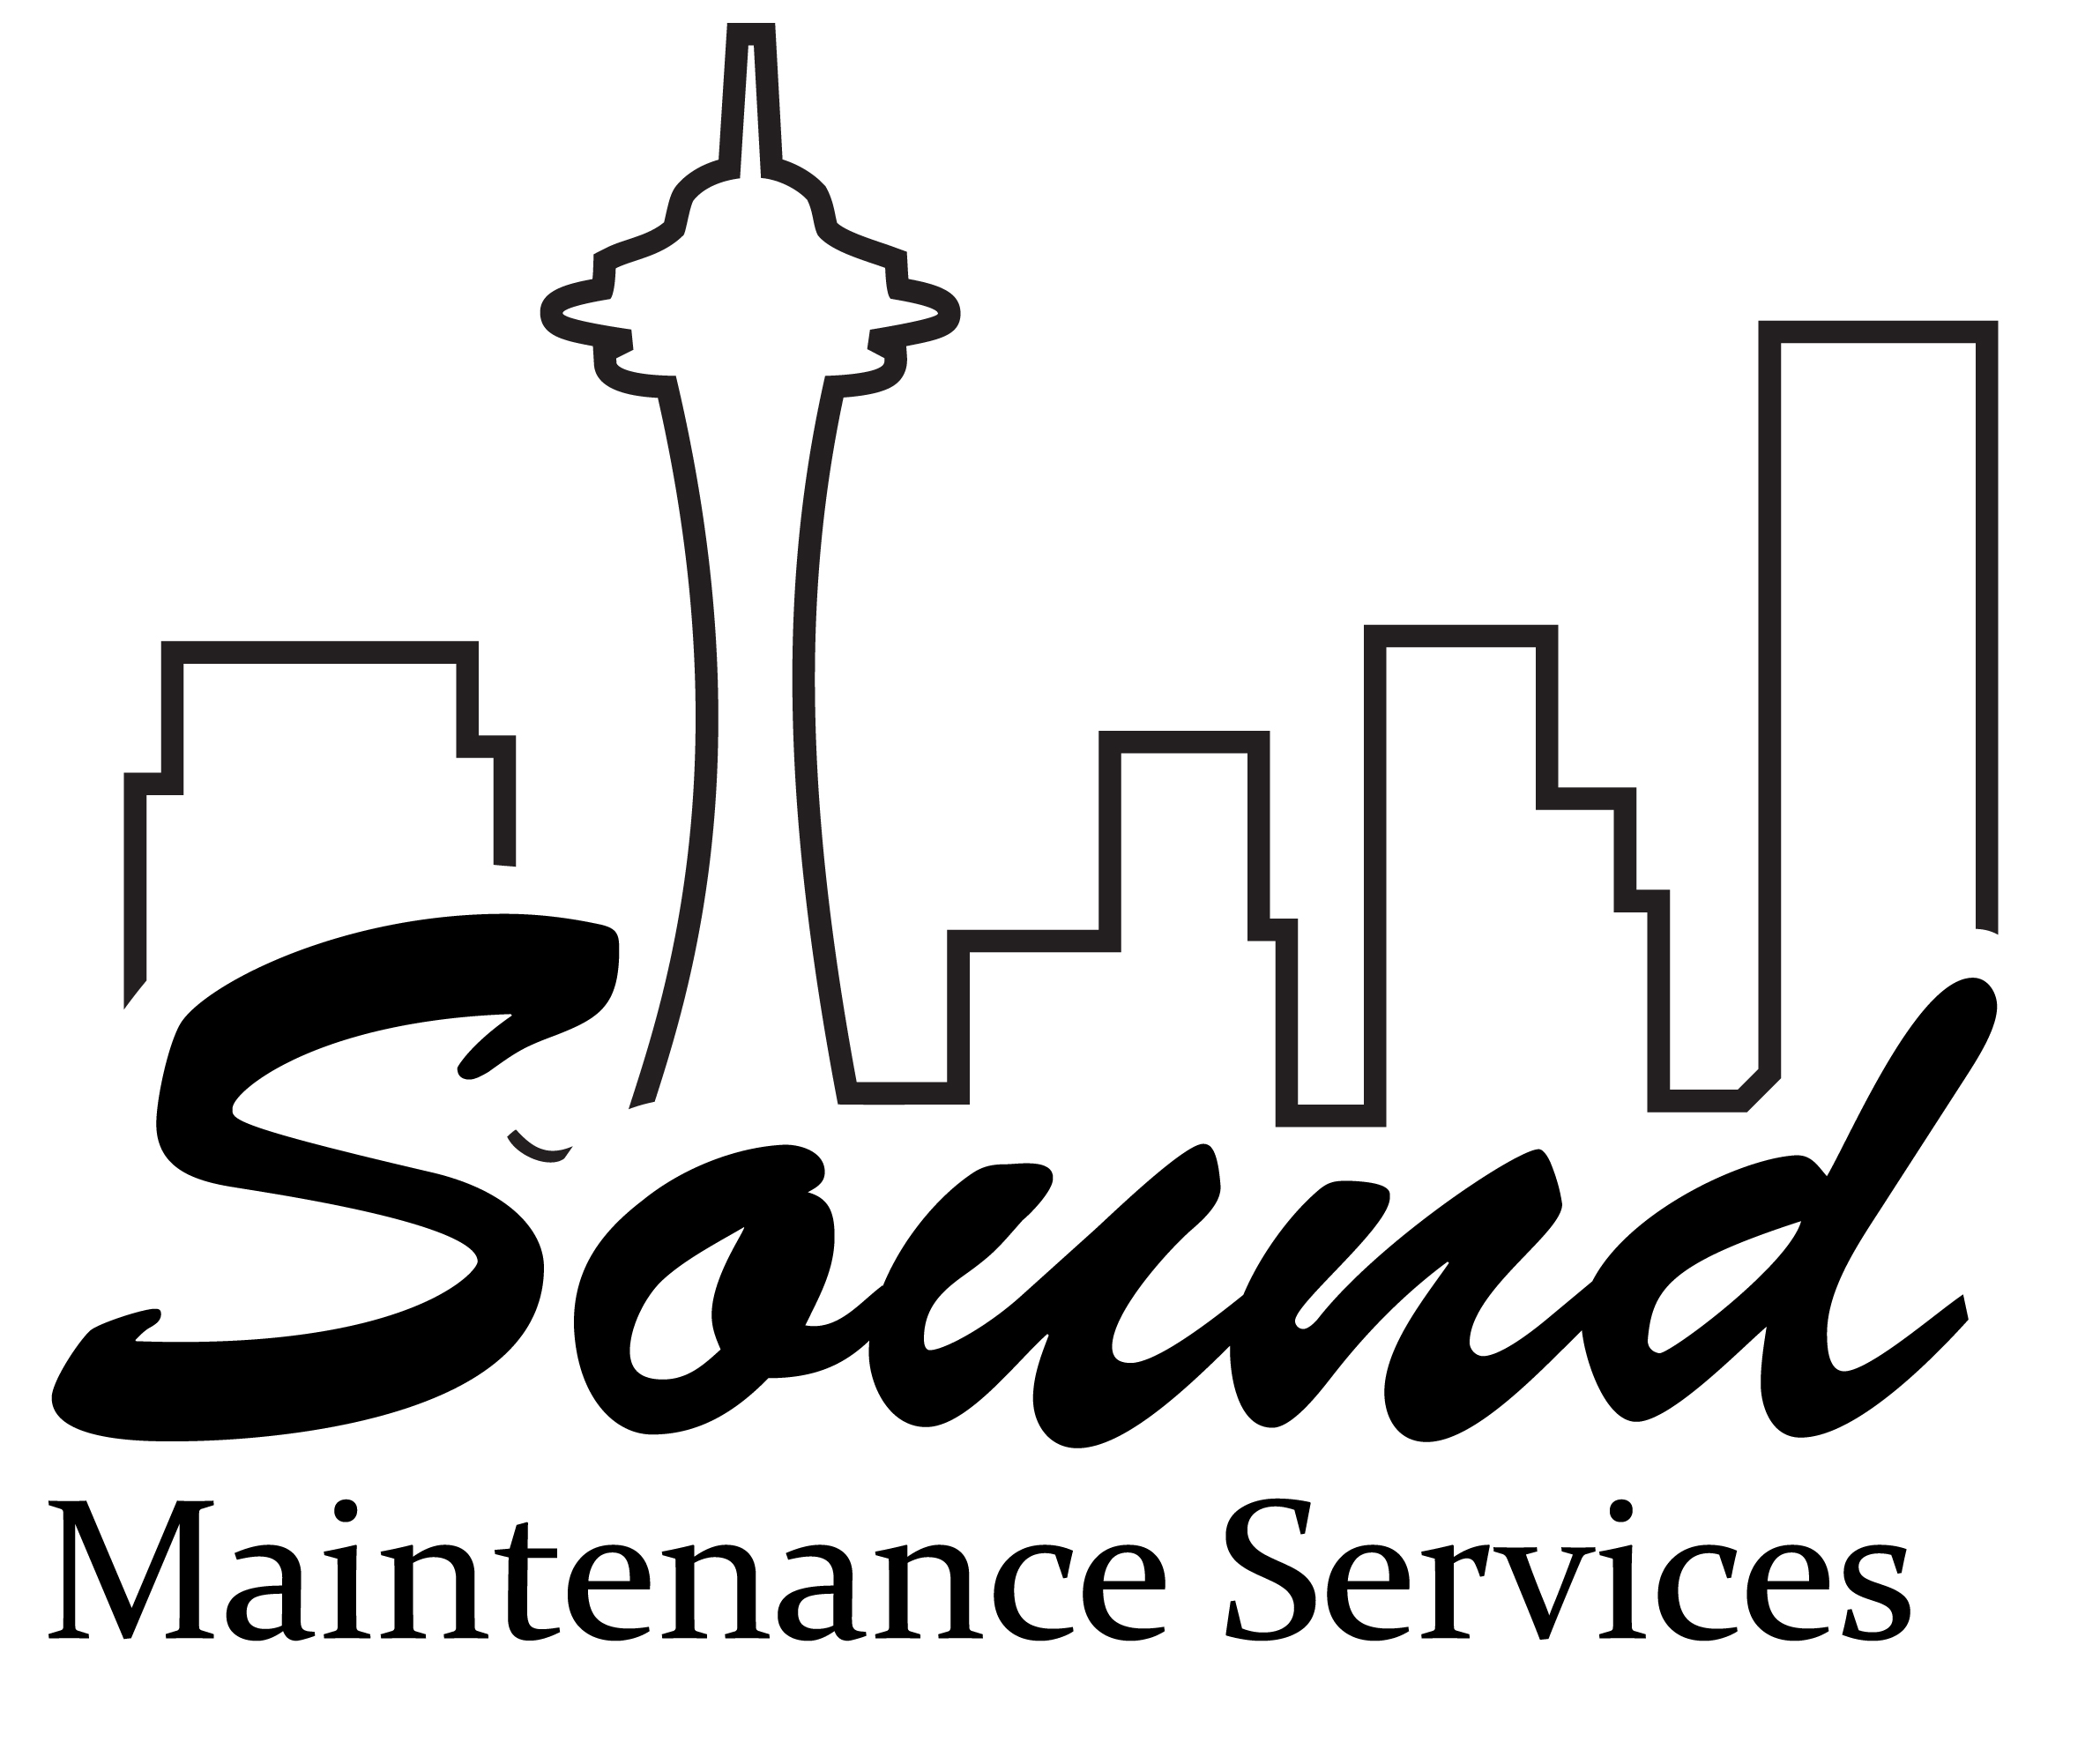 Sound Maintenance Services